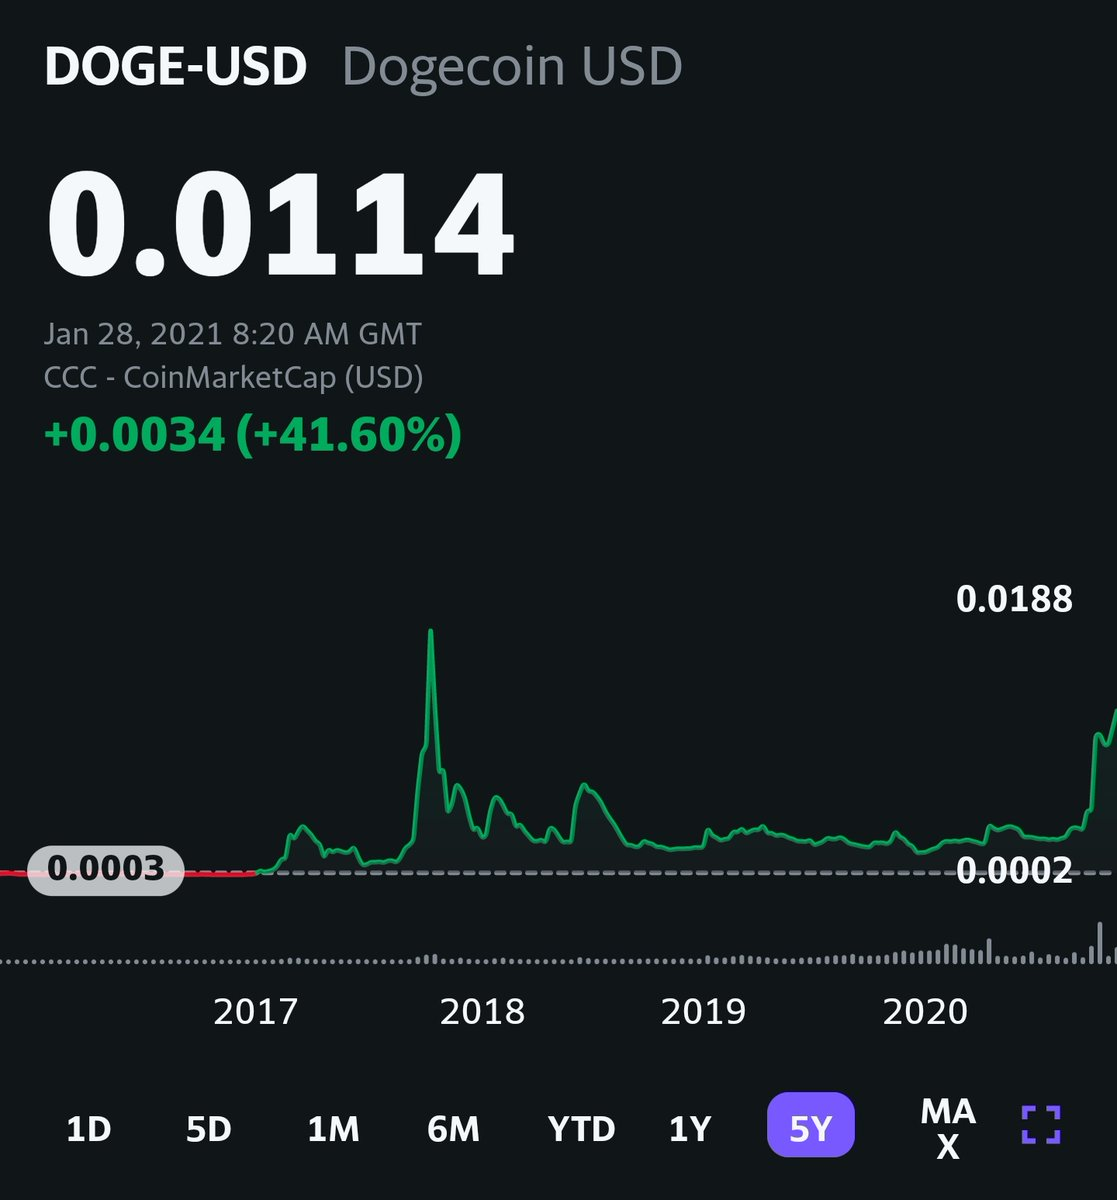 Retweet this so we can get to 2 cents!! Dogecoin is about to break its all time high!! Power of the people.  #dogecoin #robinhood